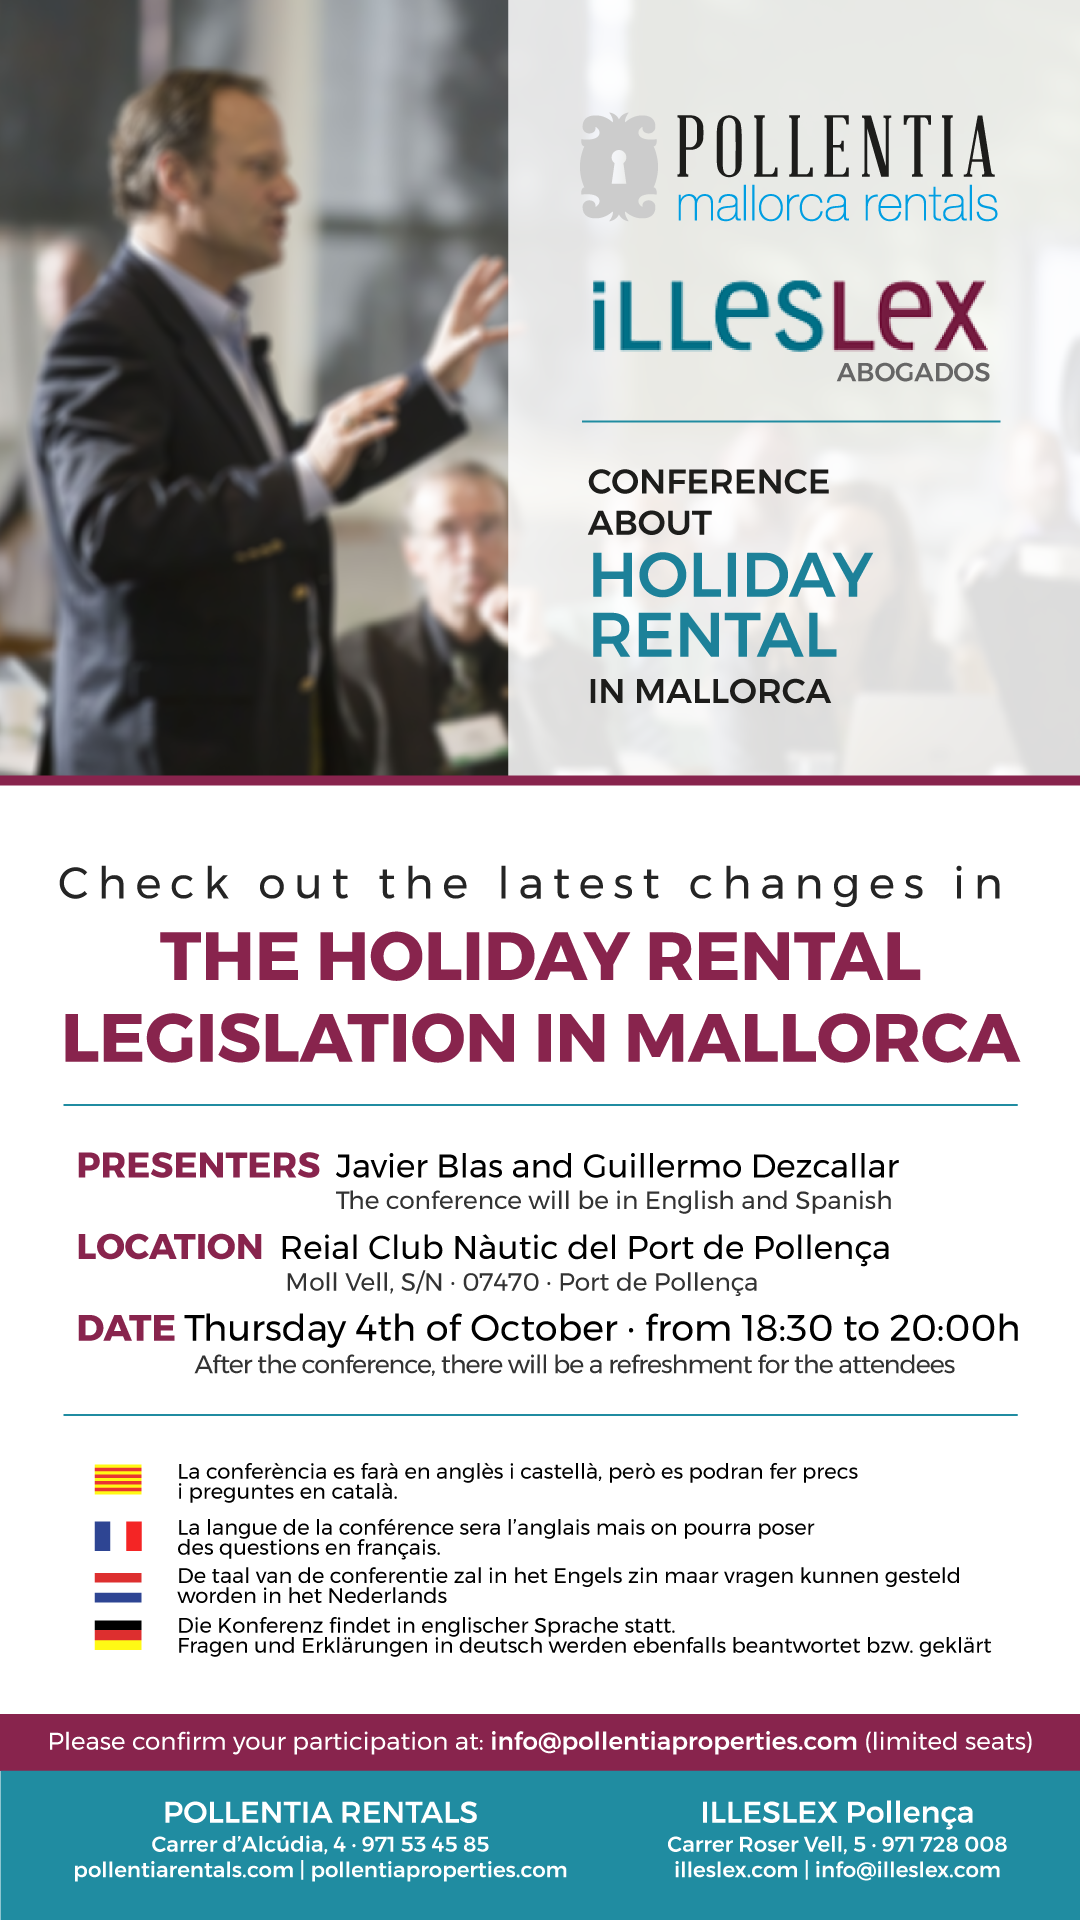 The holiday rental legislation in Mallorca